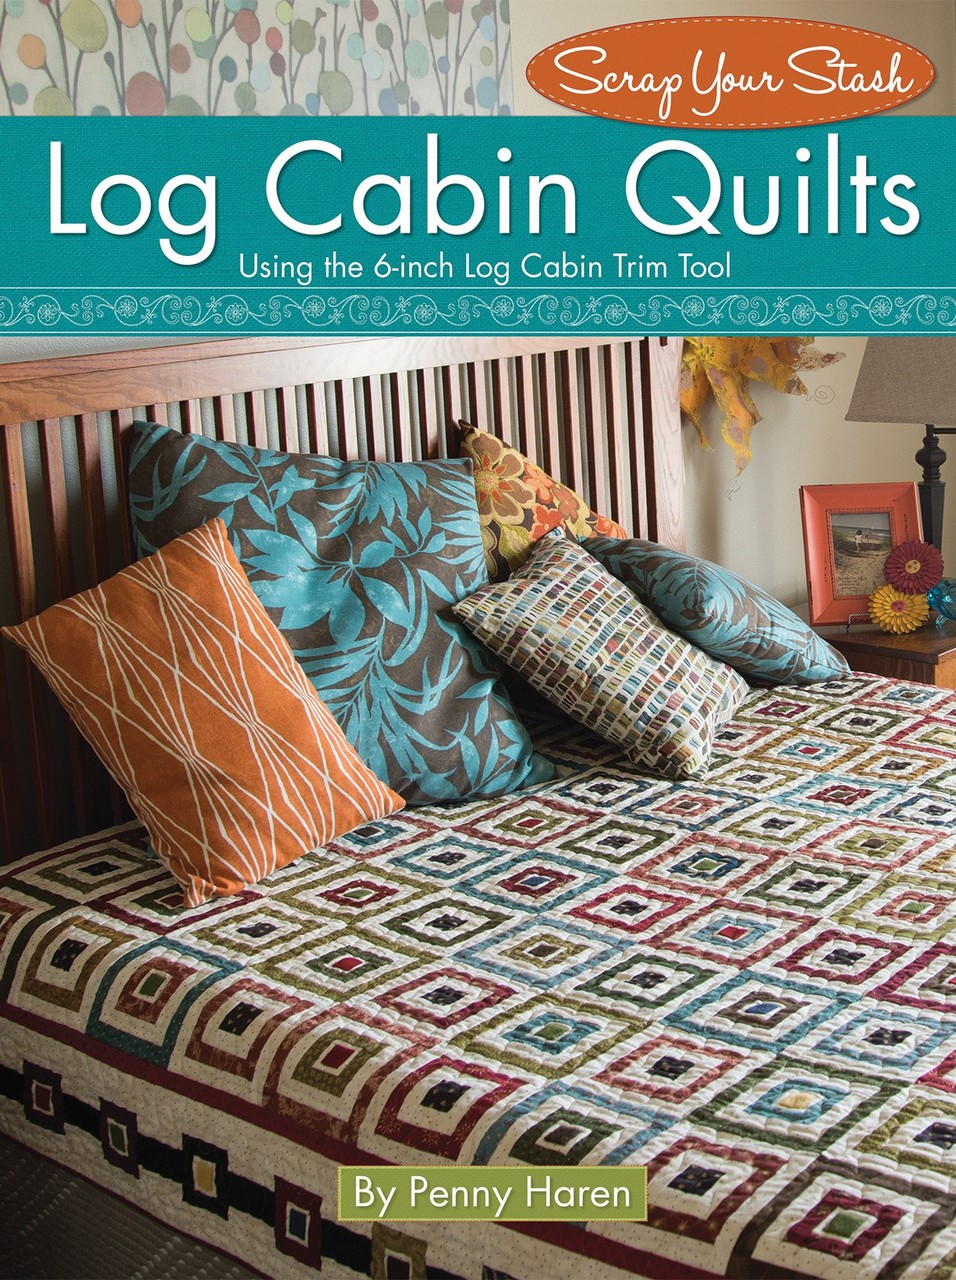 L8529 - Log Cabin Quilts - Softcover Pattern Book